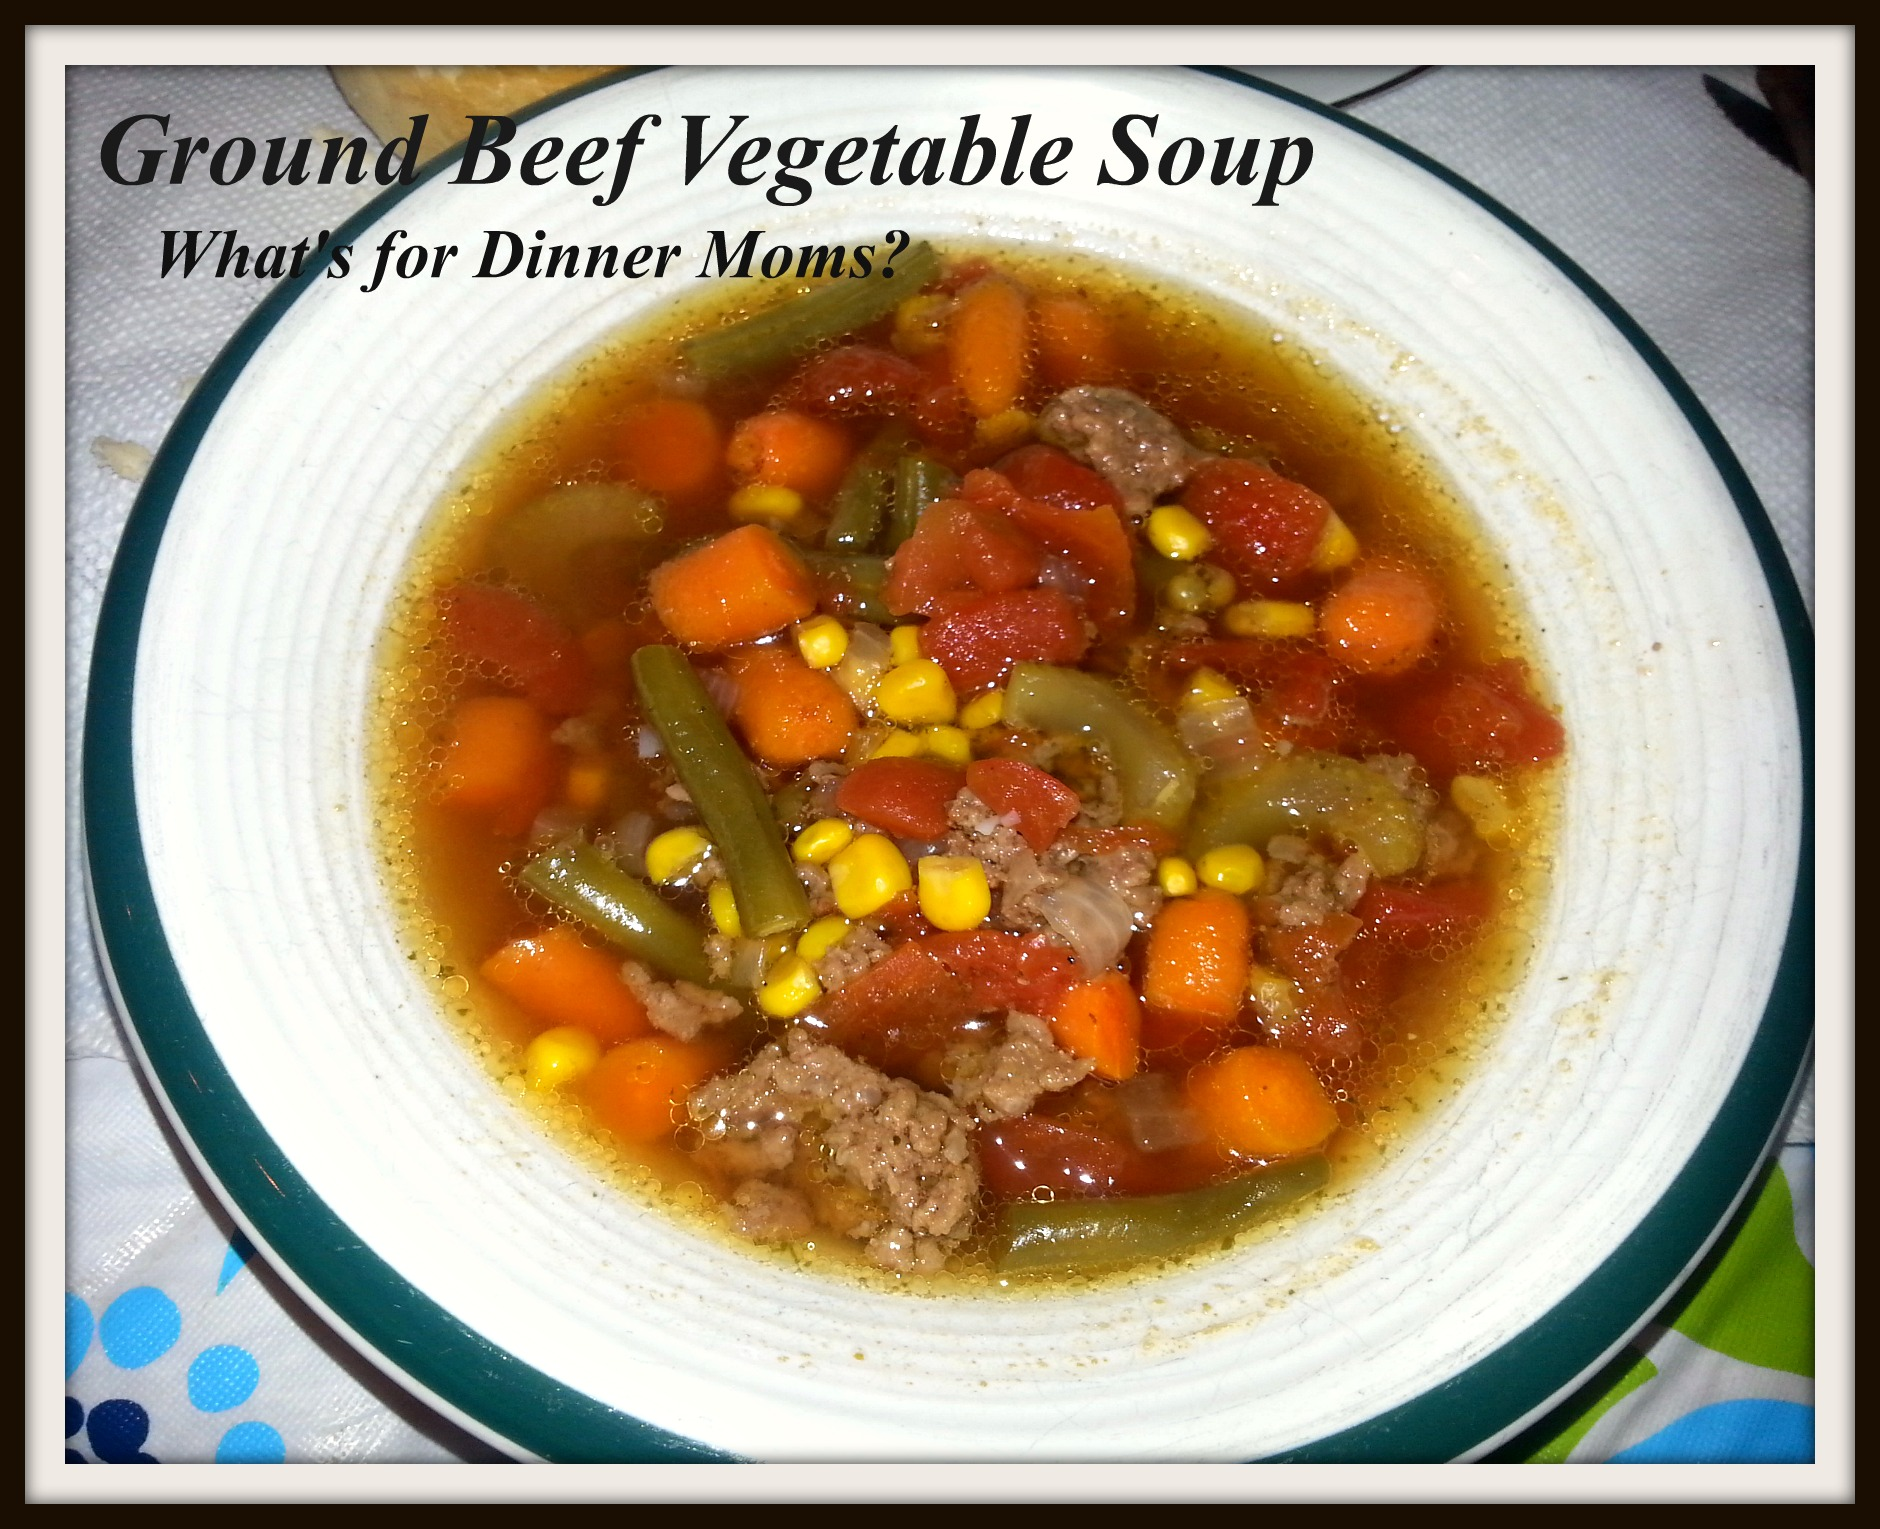 Vegetable Soup with Ground Beef | What's for Dinner Moms?